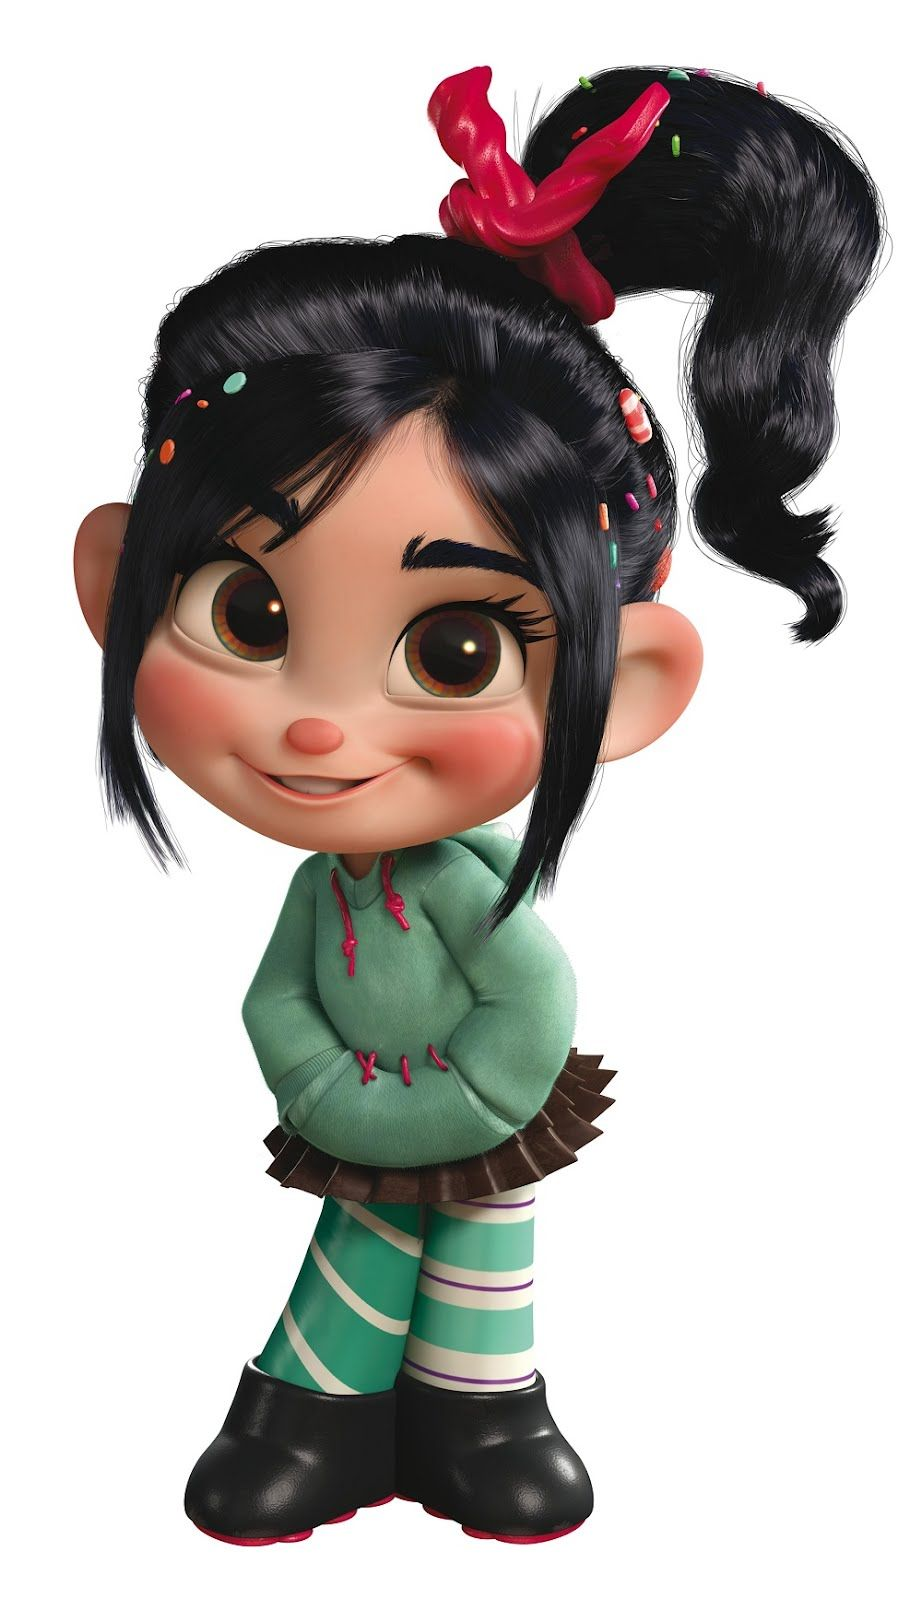 Cute 3d girl cartoon character more